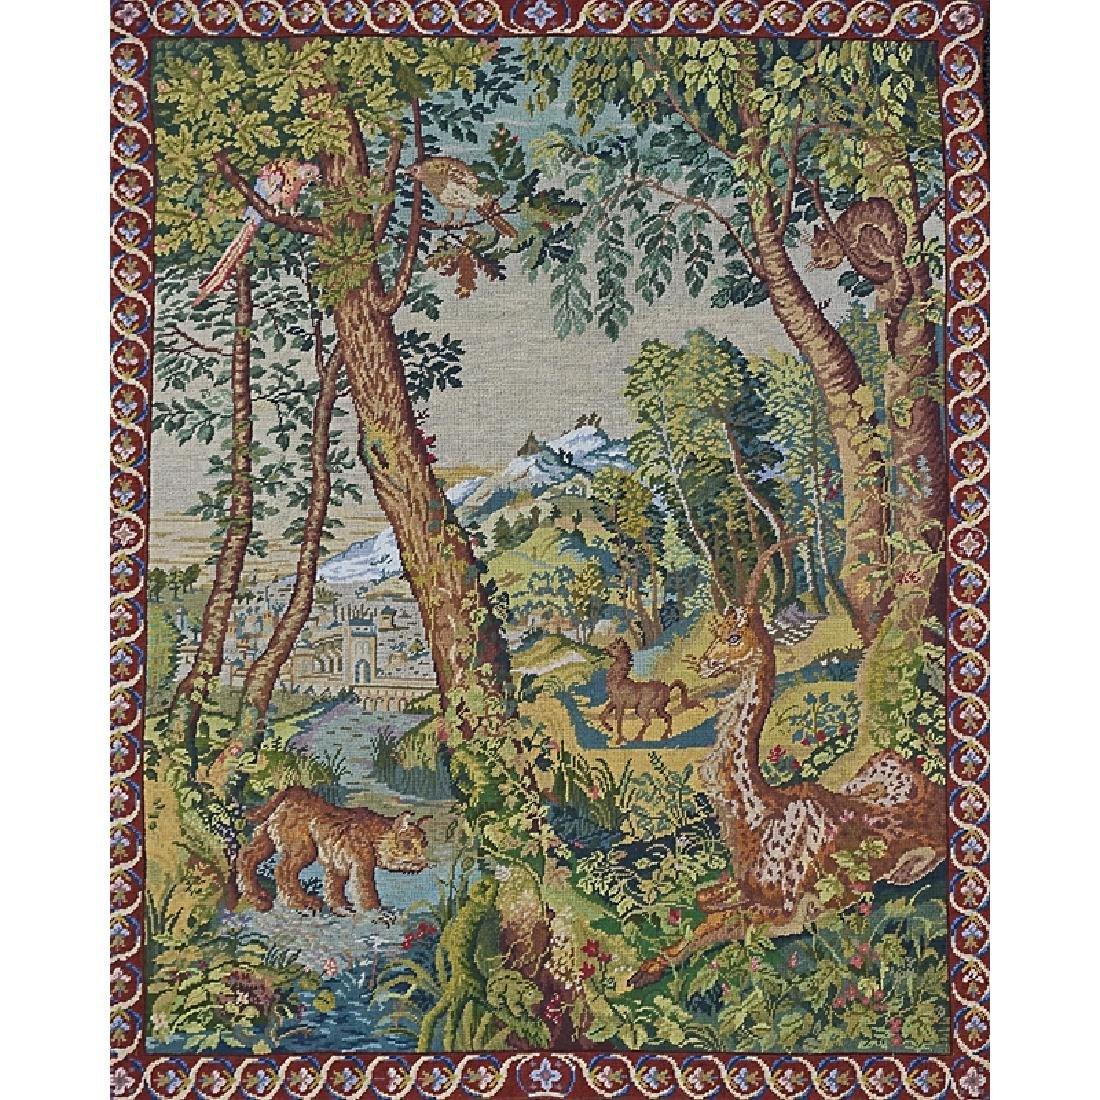 NEO-CLASSICAL TAPESTRY